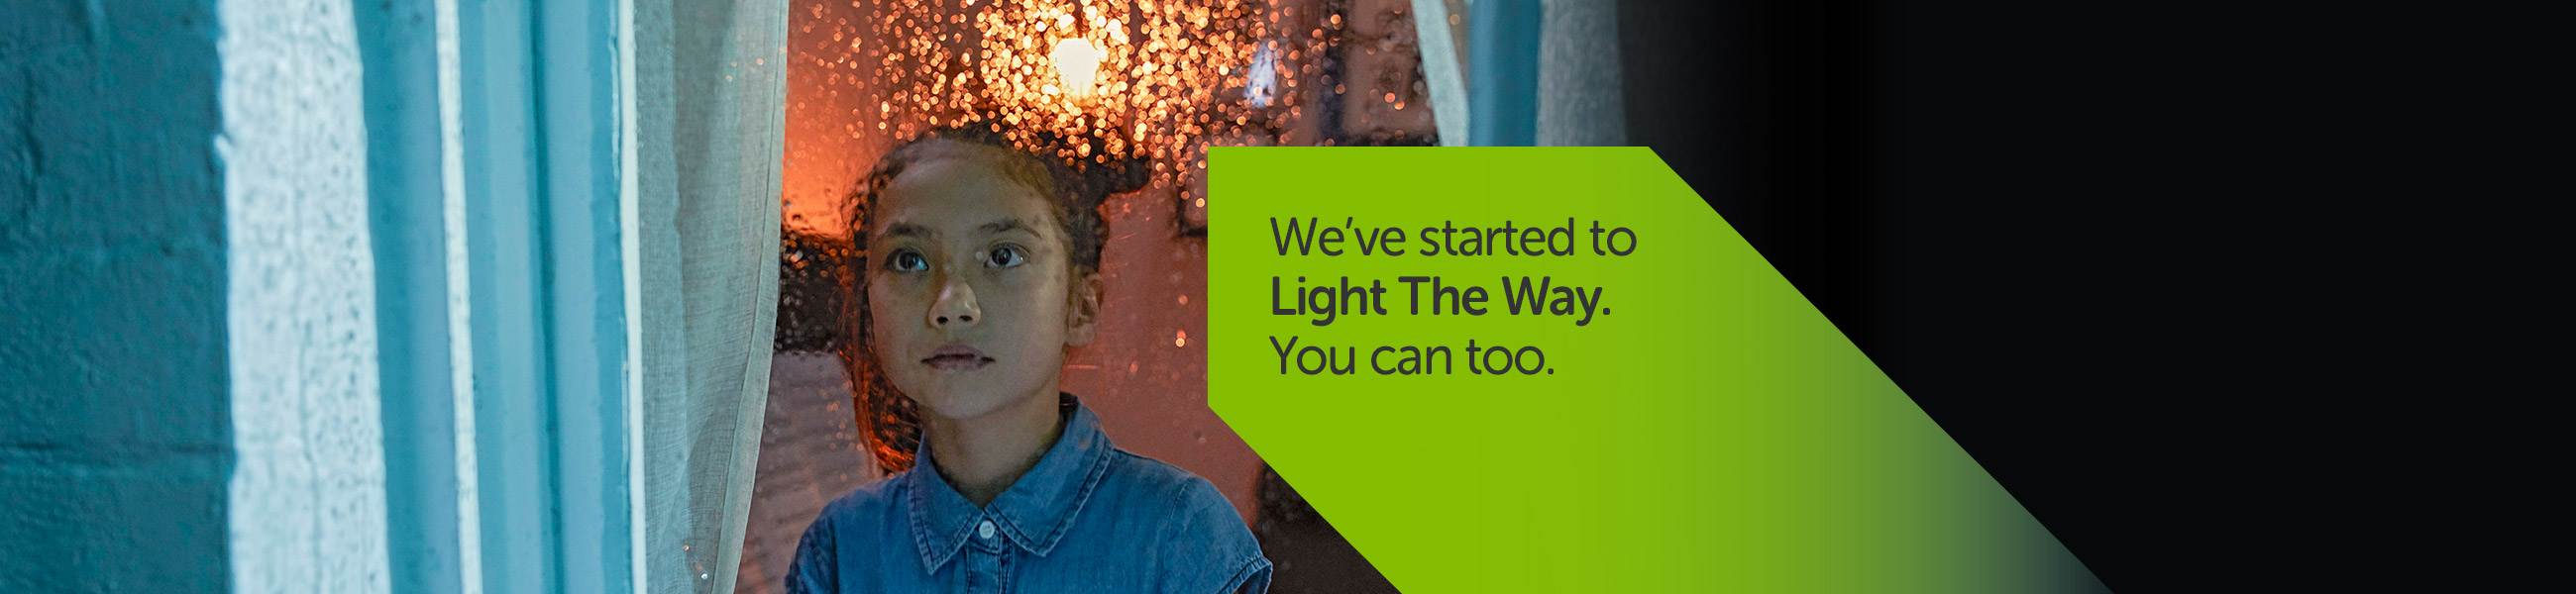 We've started to Light The Way. You can too.